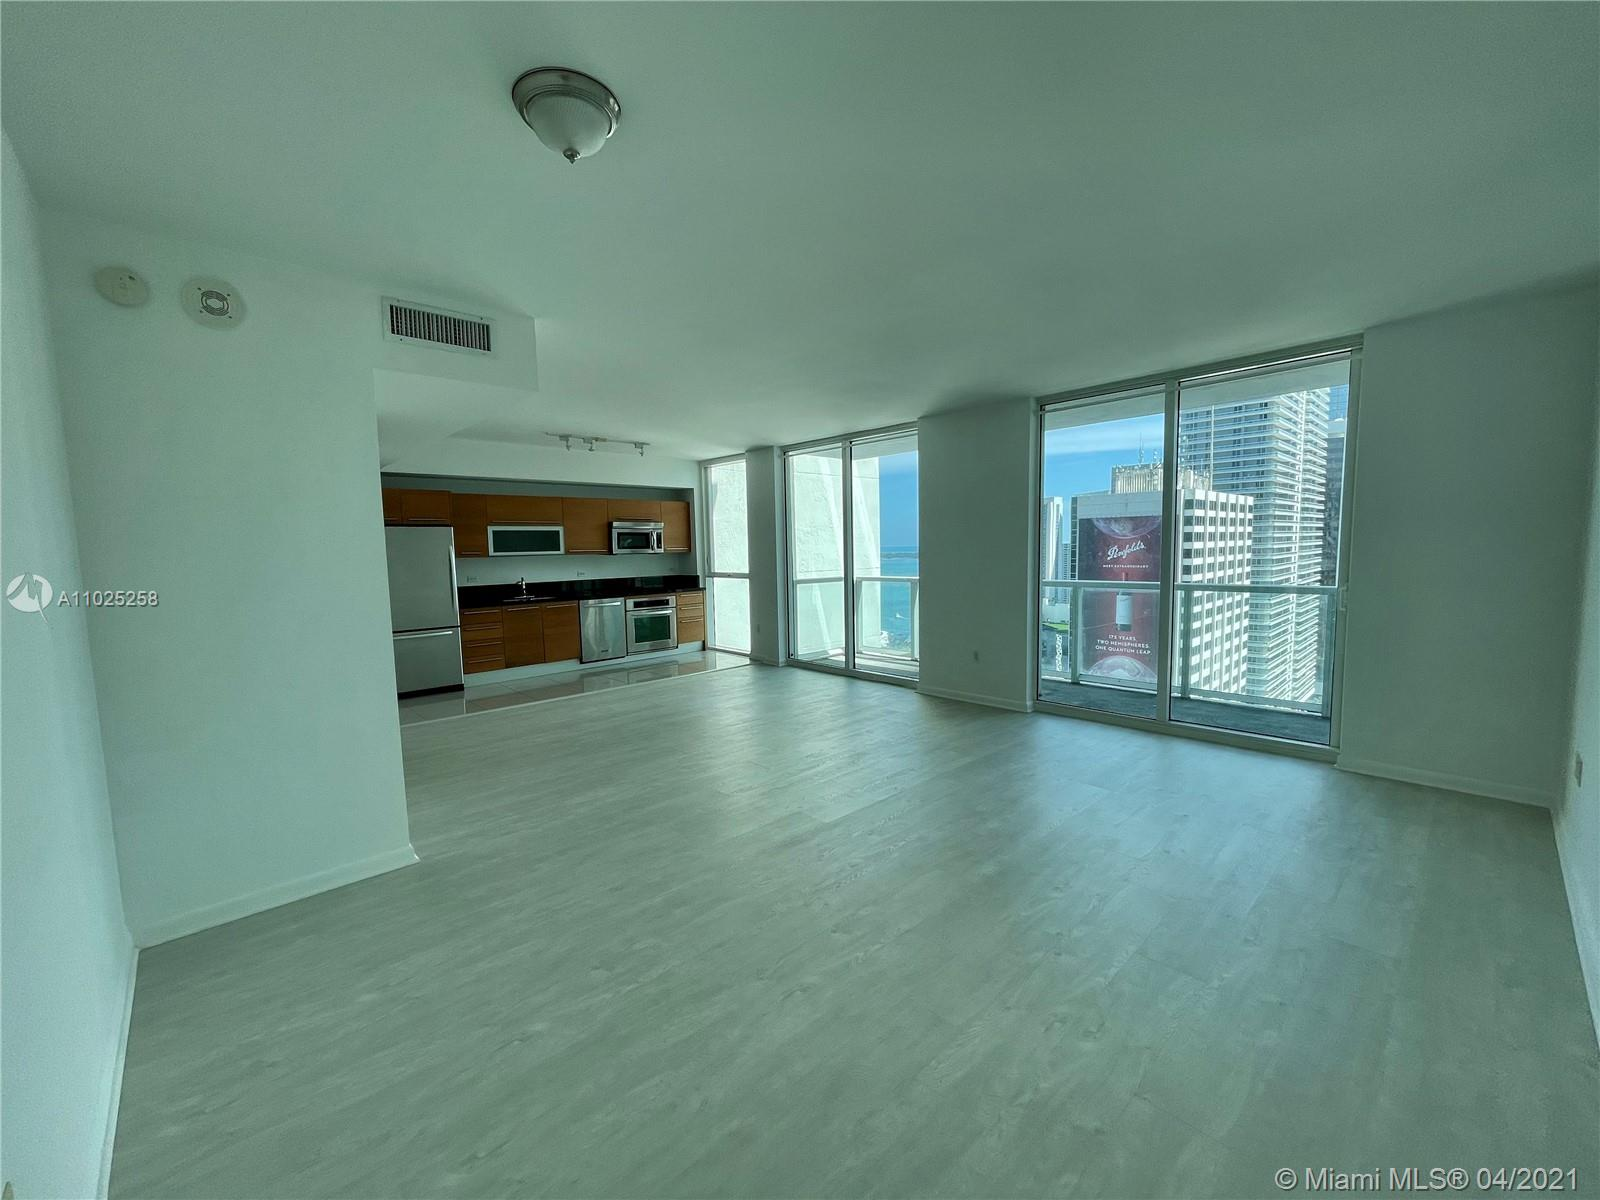 Beautiful and spacious studio with just upgrade to wood floors. Amazing city and water views. European kitchen with stainless steel appliances. Great full service condo with plenty of amenities. Excellent location right on Biscayne Blvd across the Street of Bayfront Park, Bayside, AAA and much more. Easy to show.